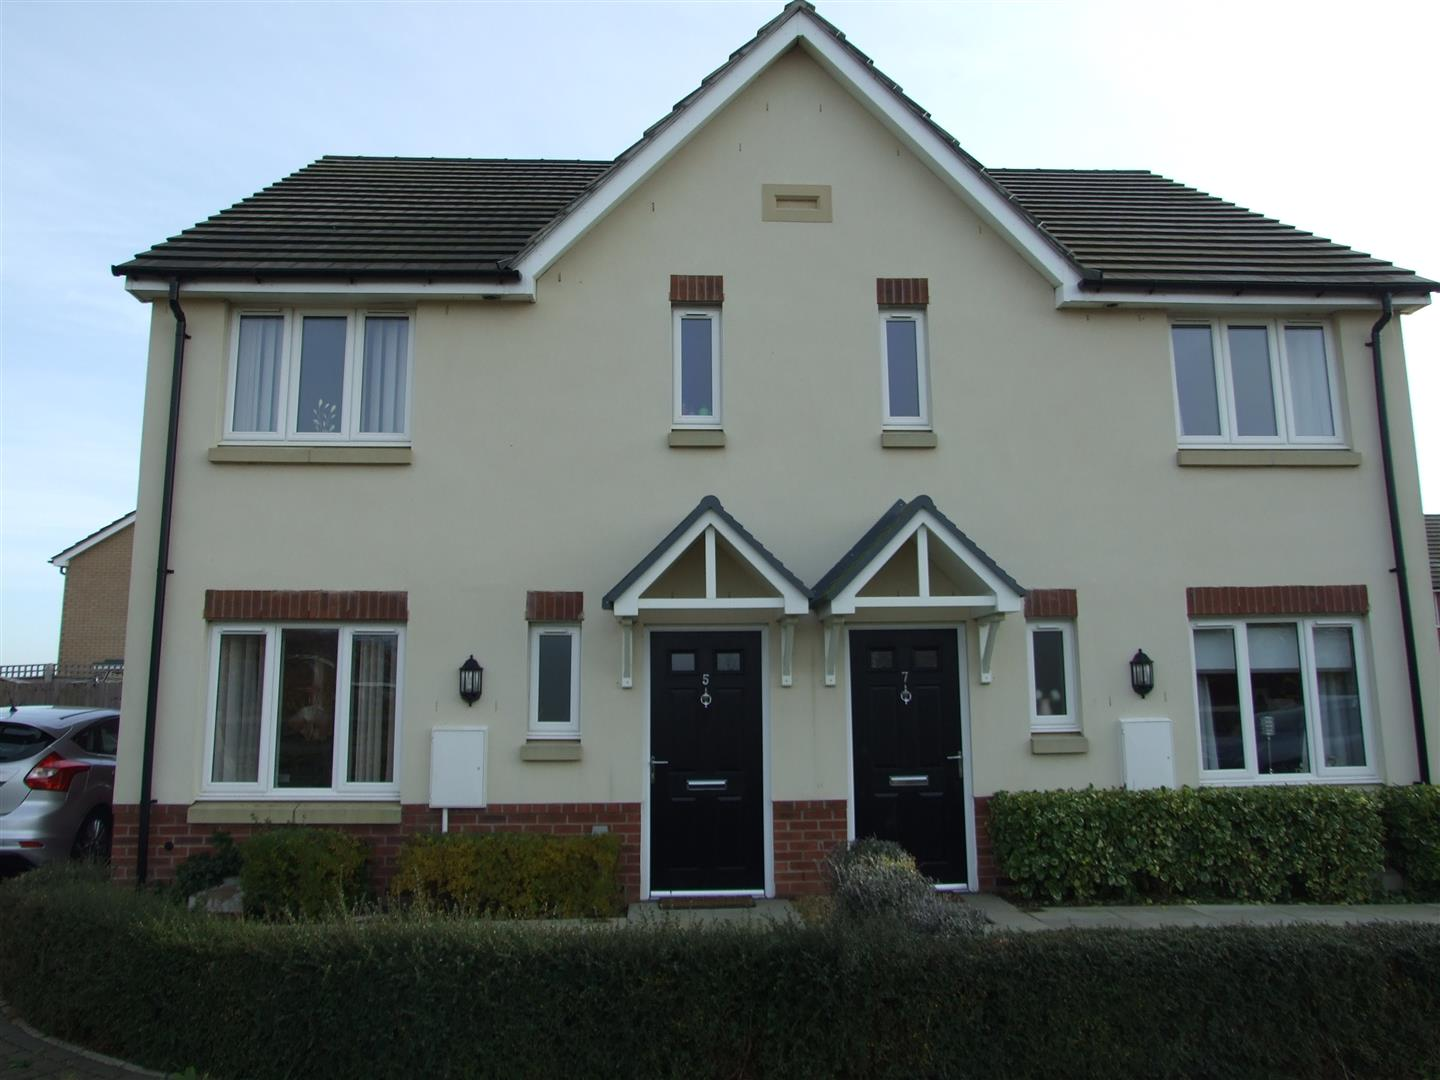 3 bed house to rent in Long Sutton, PE12 9GZ  - Property Image 7